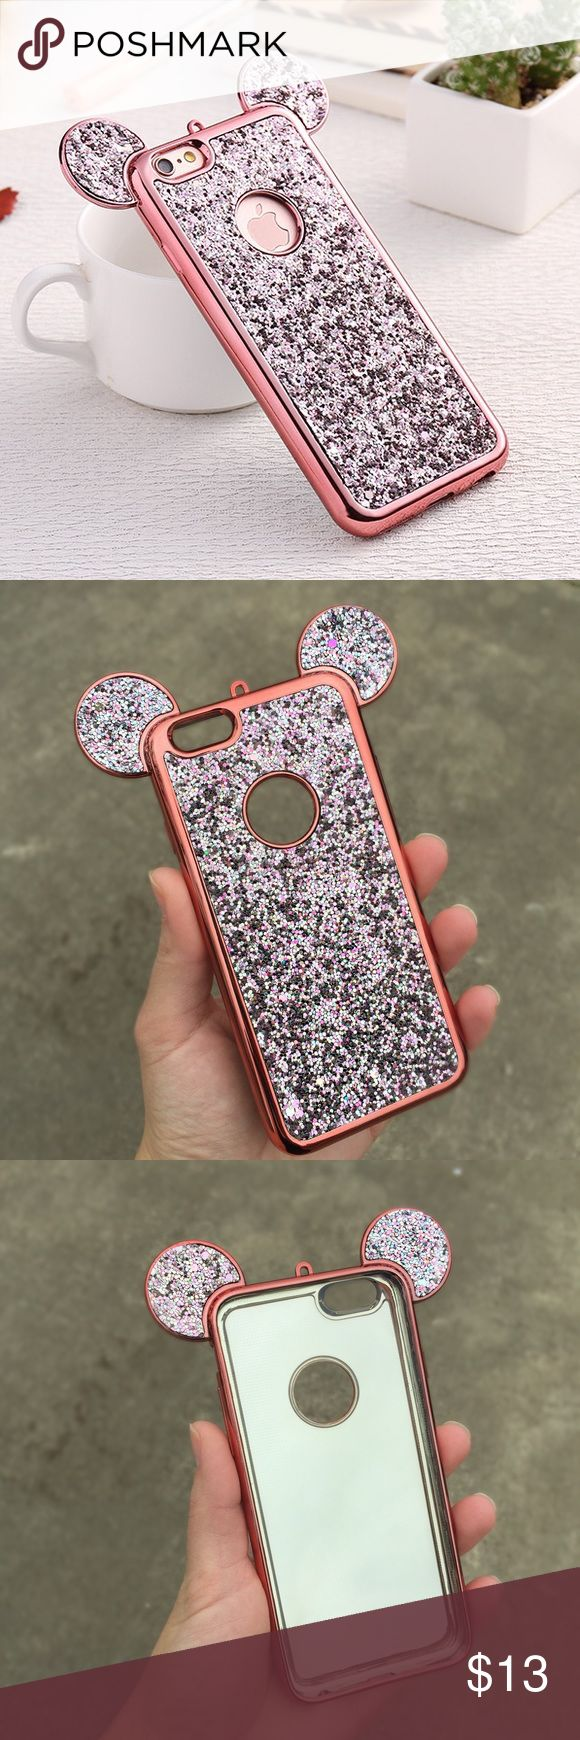 ❤︎ Mickey Ears Rose Gold Bling Glitter iPhone Case This listing is for a gorgeous rose gold glitter Mickey ear iPhone case. Available for iPhone 6/6s, iPhone 6/6s plus, iPhone 7, and iPhone 7 plus. Cases are made out of soft plastic so is lightweight and flexible. Check my other listings for more colors.  Accessories Phone Cases